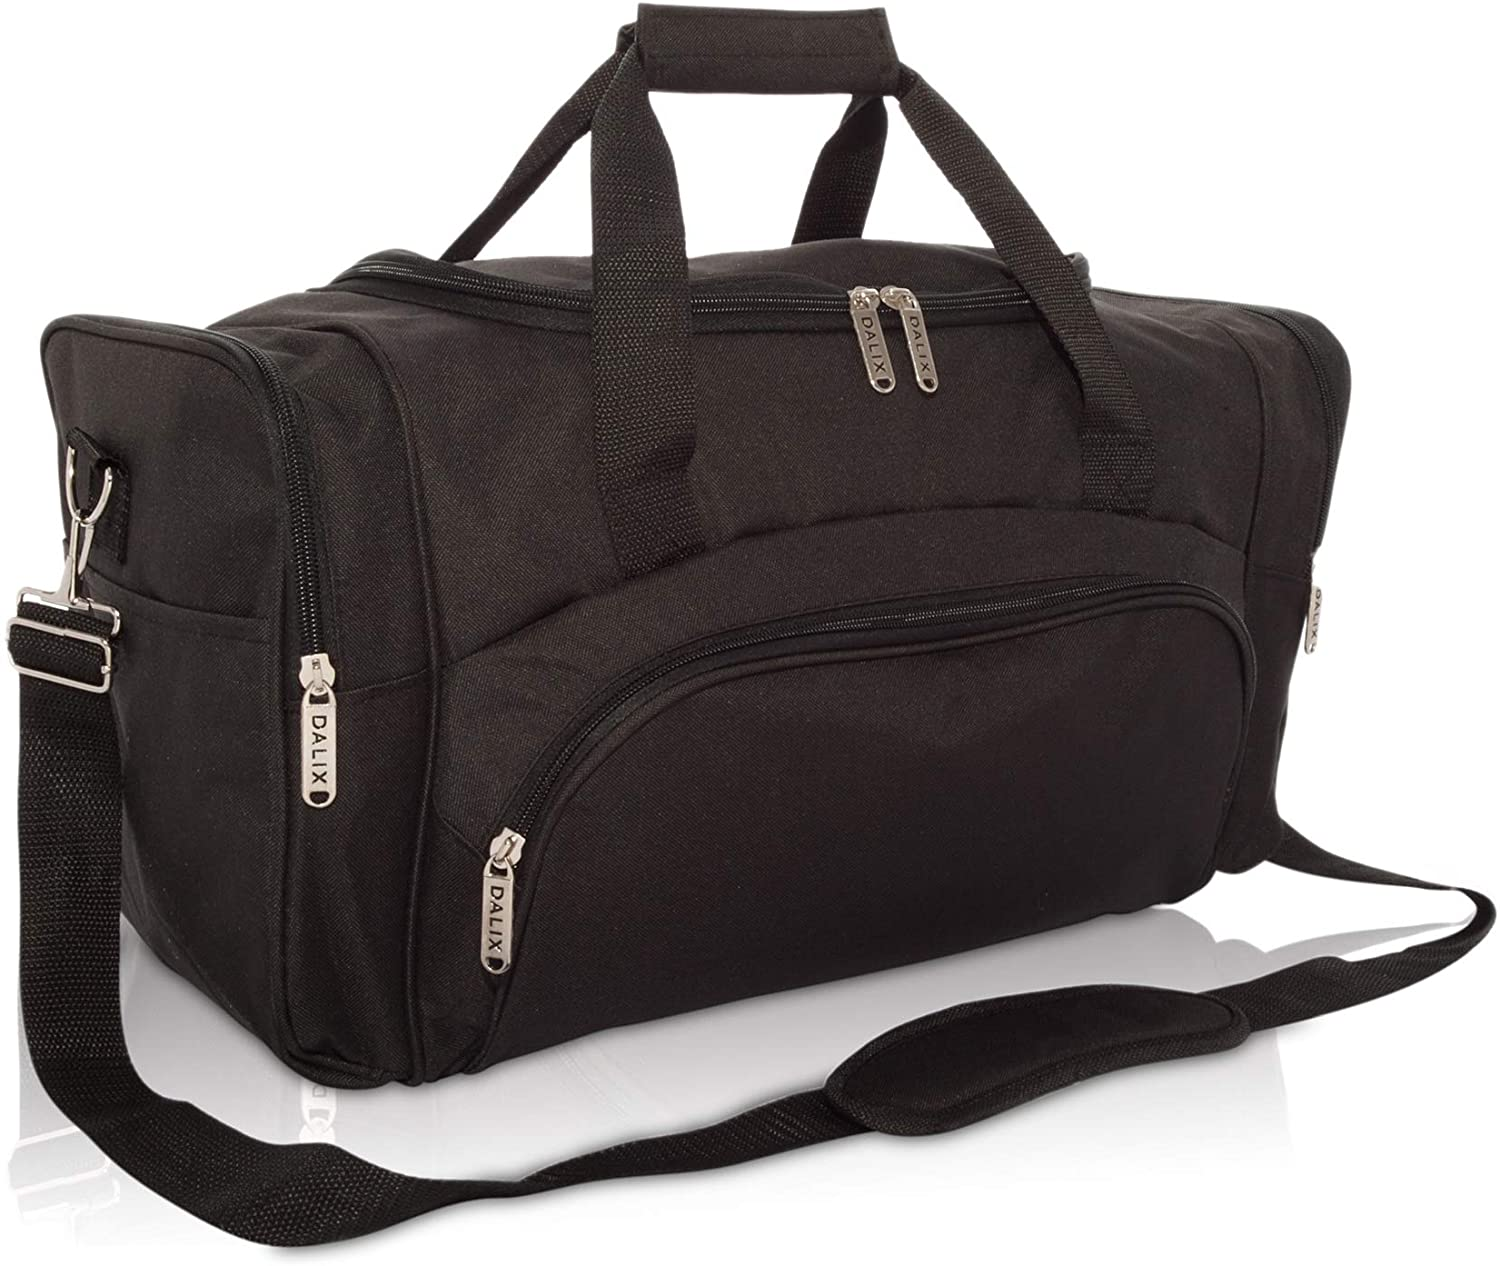 DALIX Signature Travel or Gym Duffle 5% OFF Black Gray in Shipping included B Navy Bag